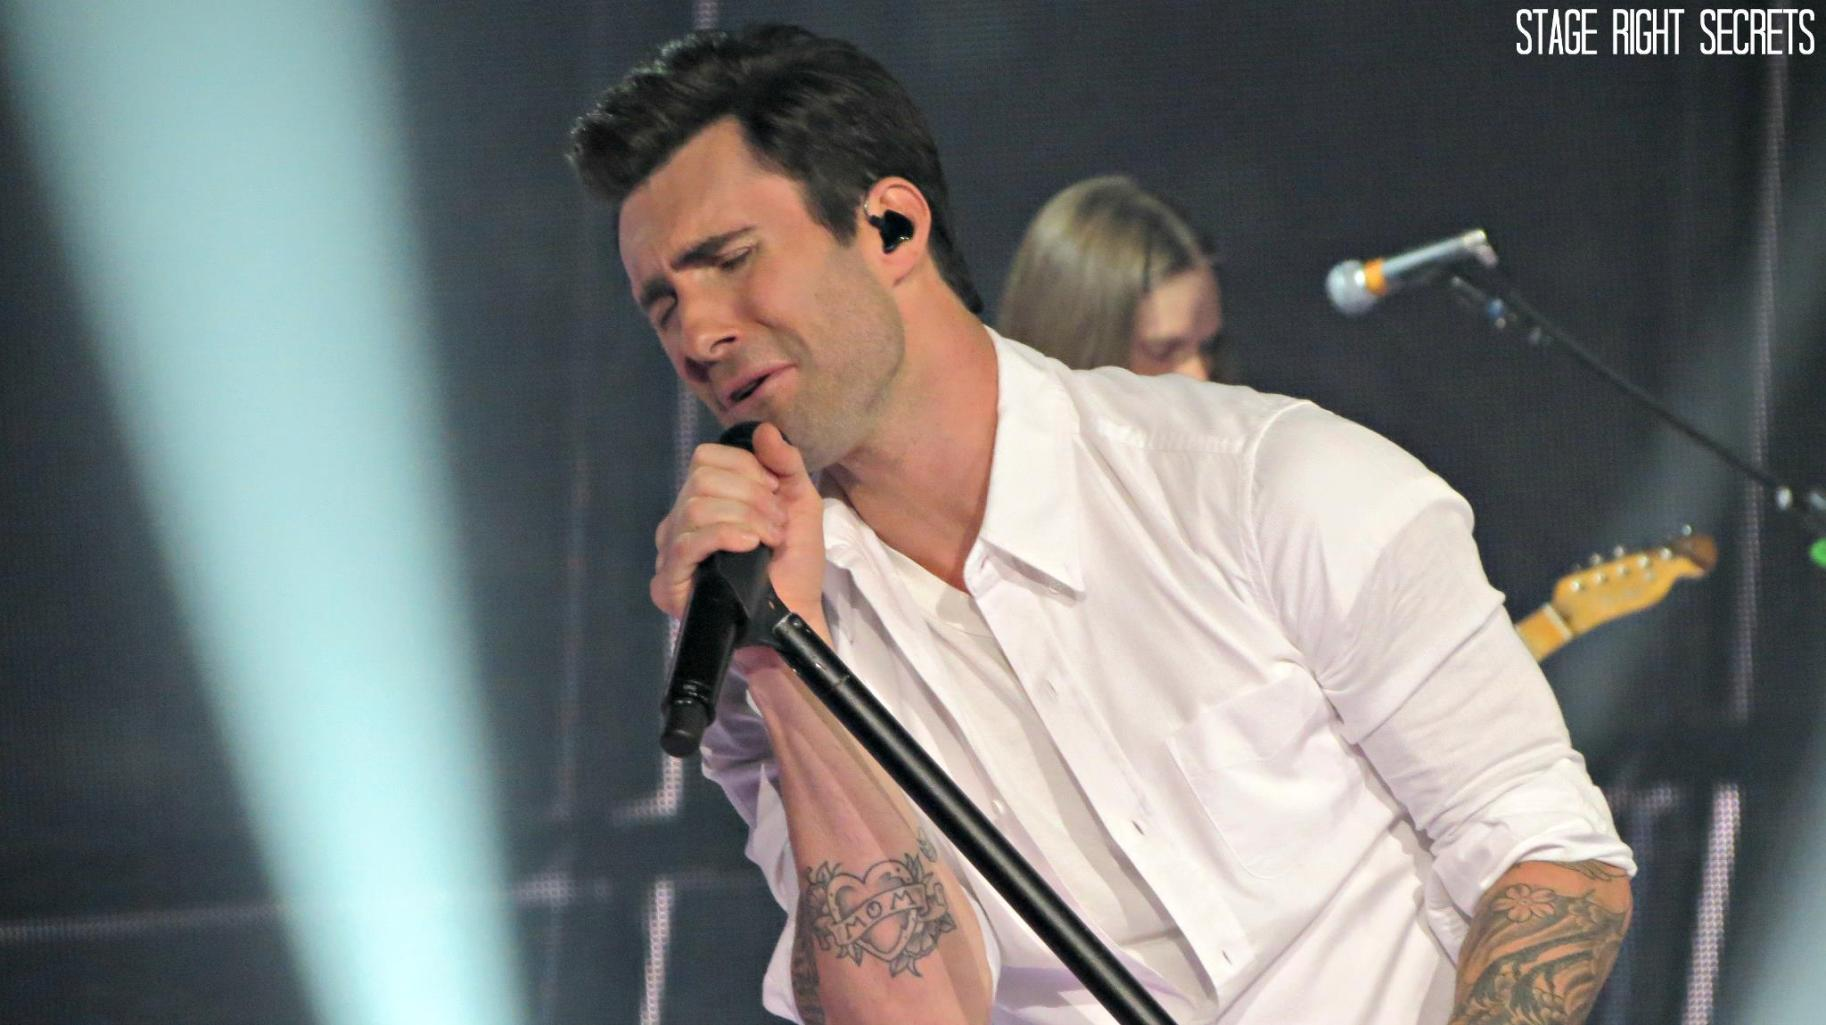 A photo, taken by Jacklyn, of Adam Levine.